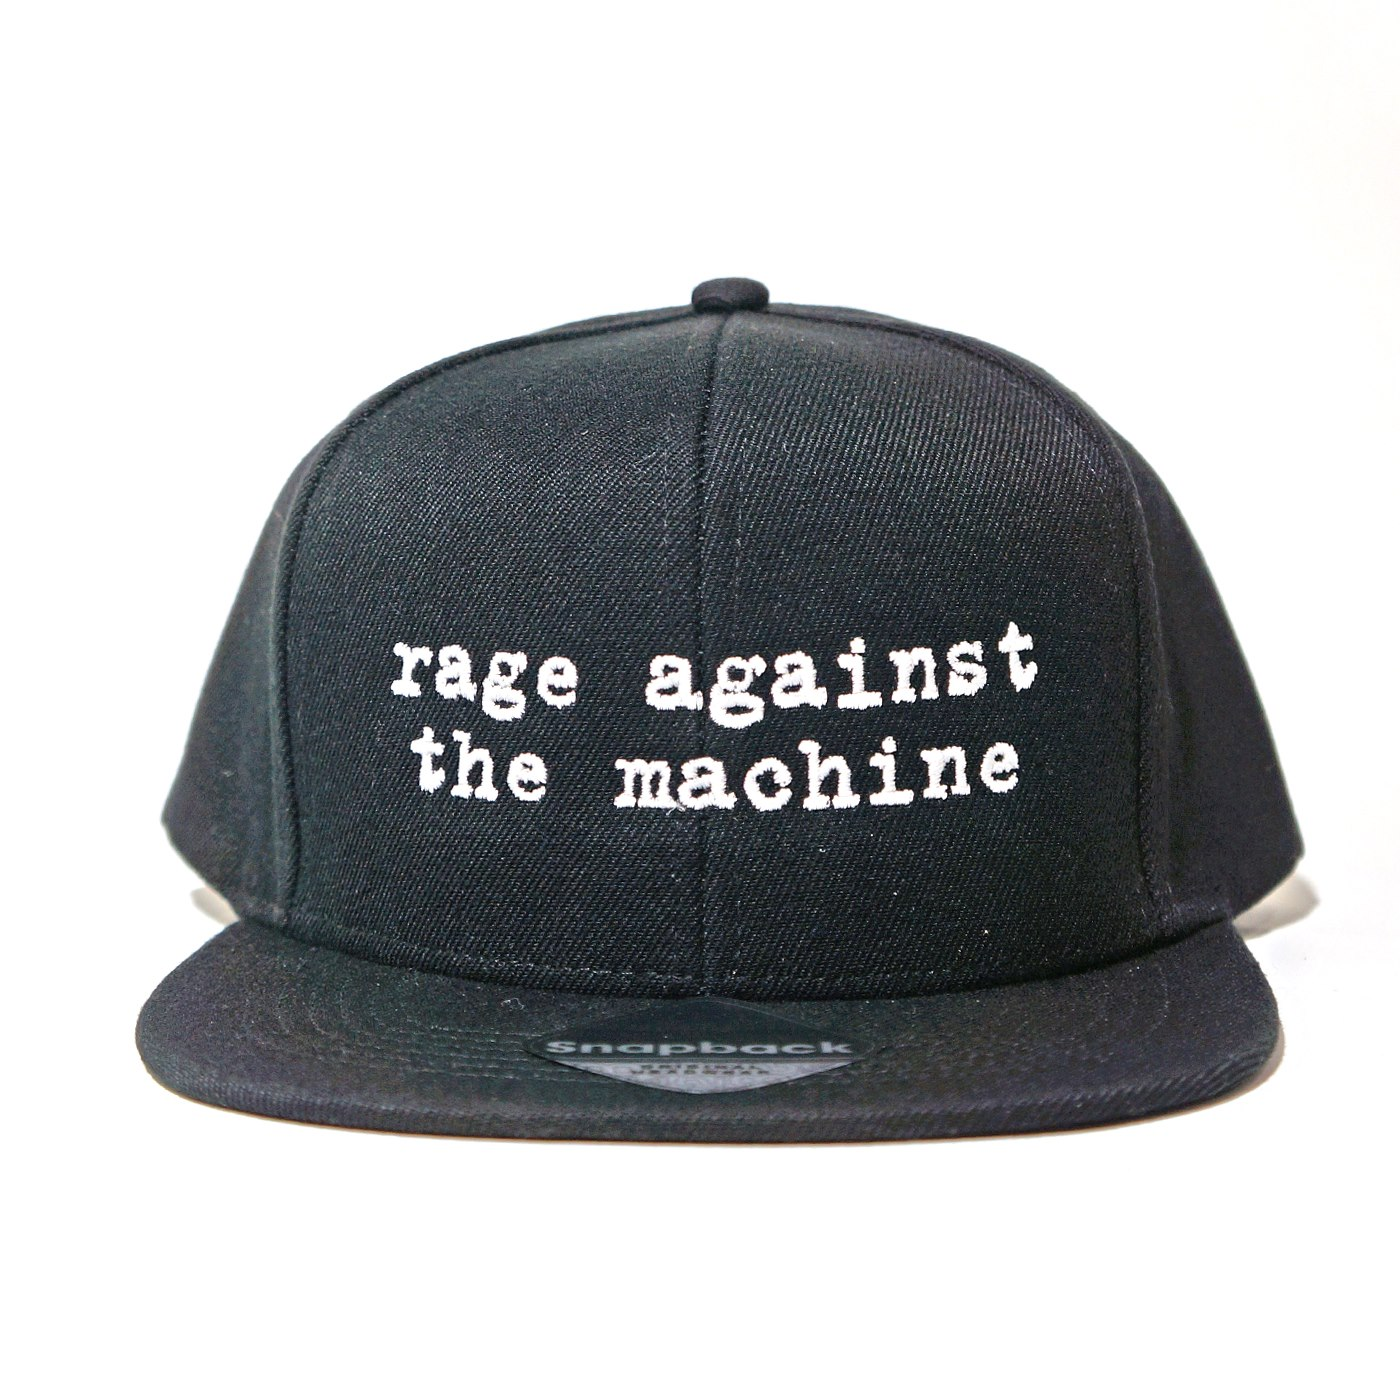 RAGE AGAINST THE MACHINE スナップバック キャップ Logo-Black